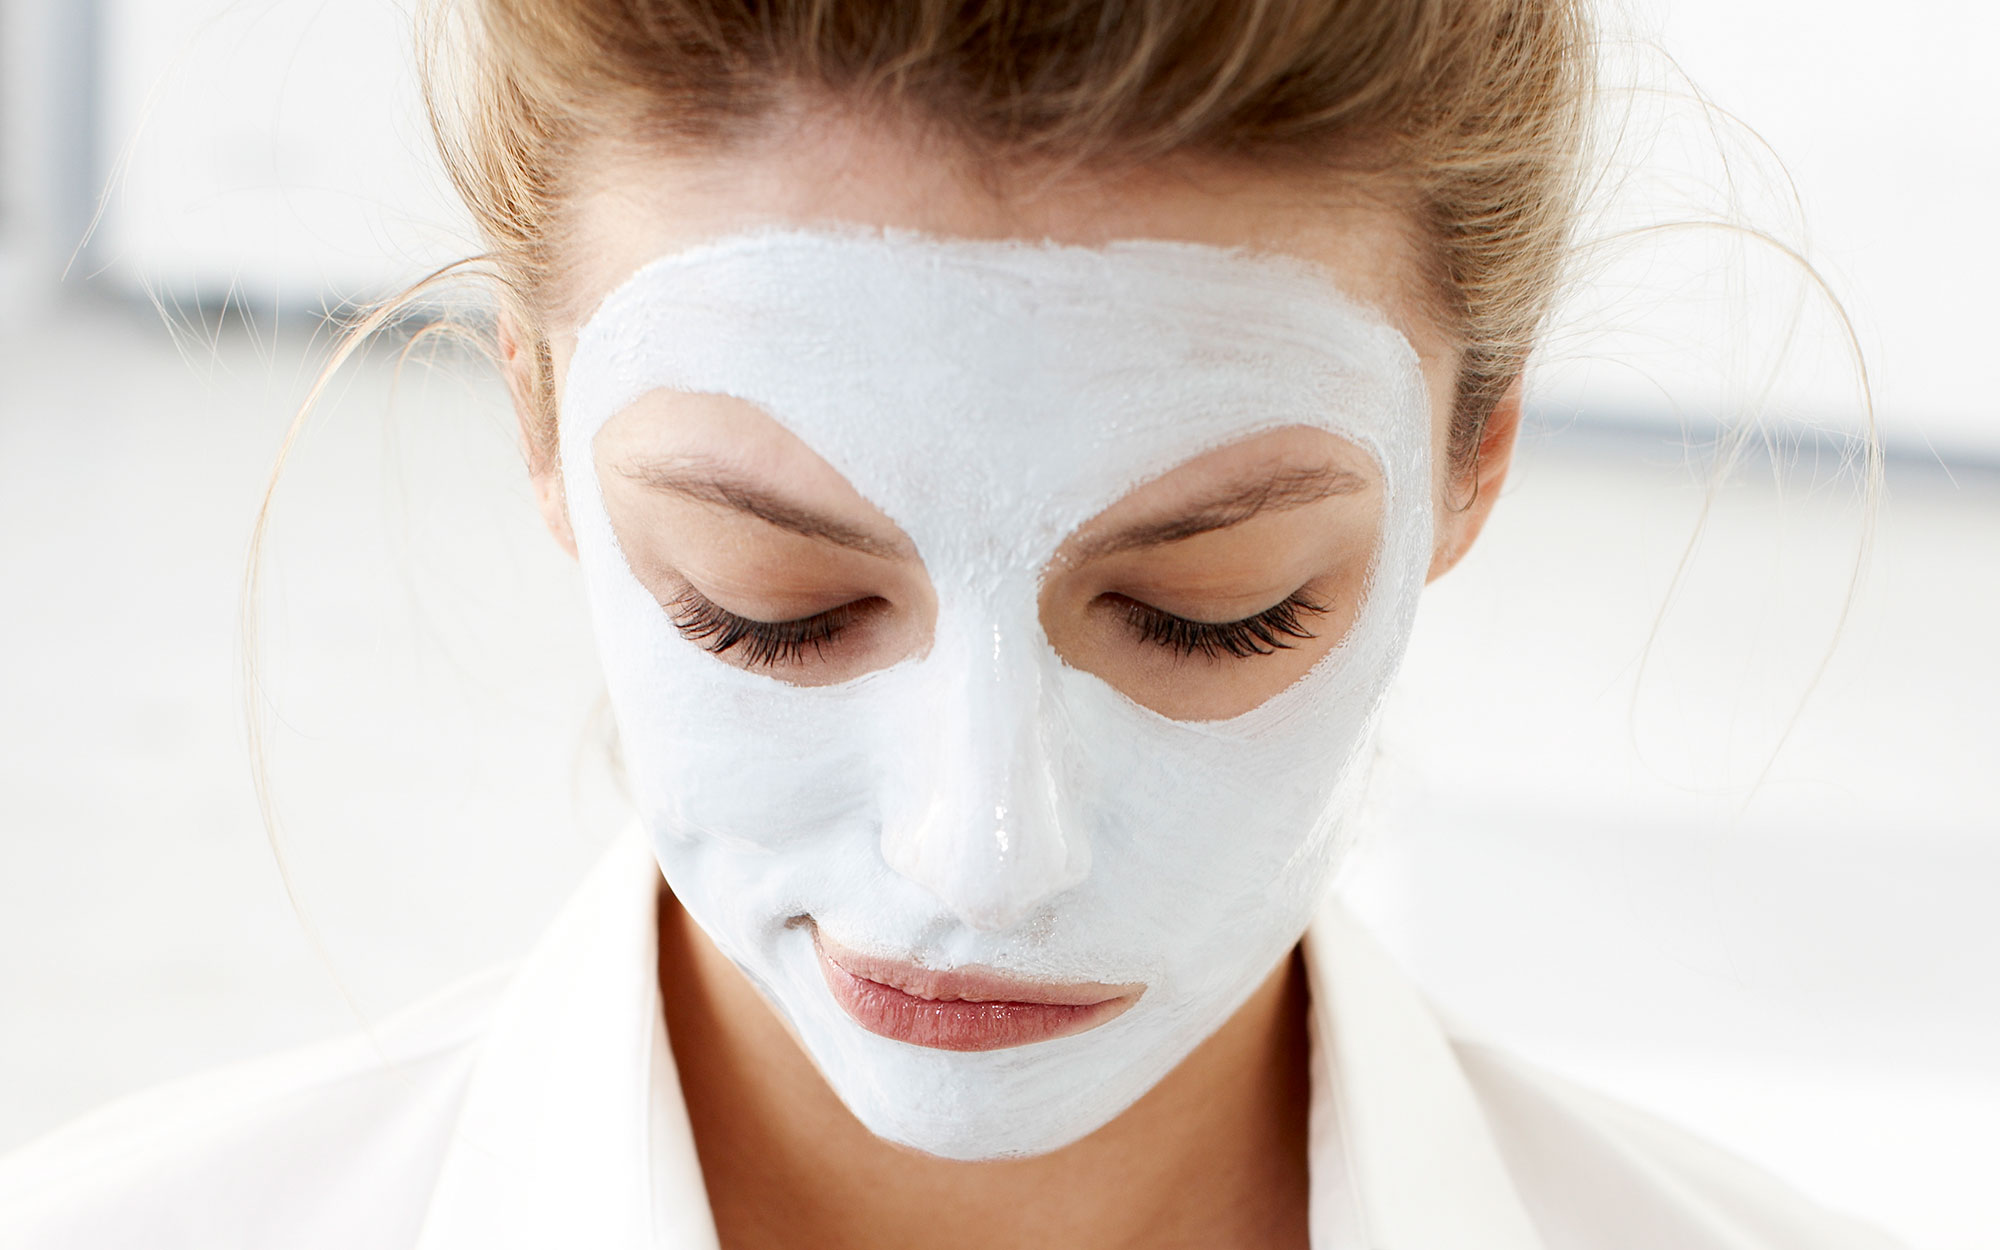 Woman with facial mask using cell phone